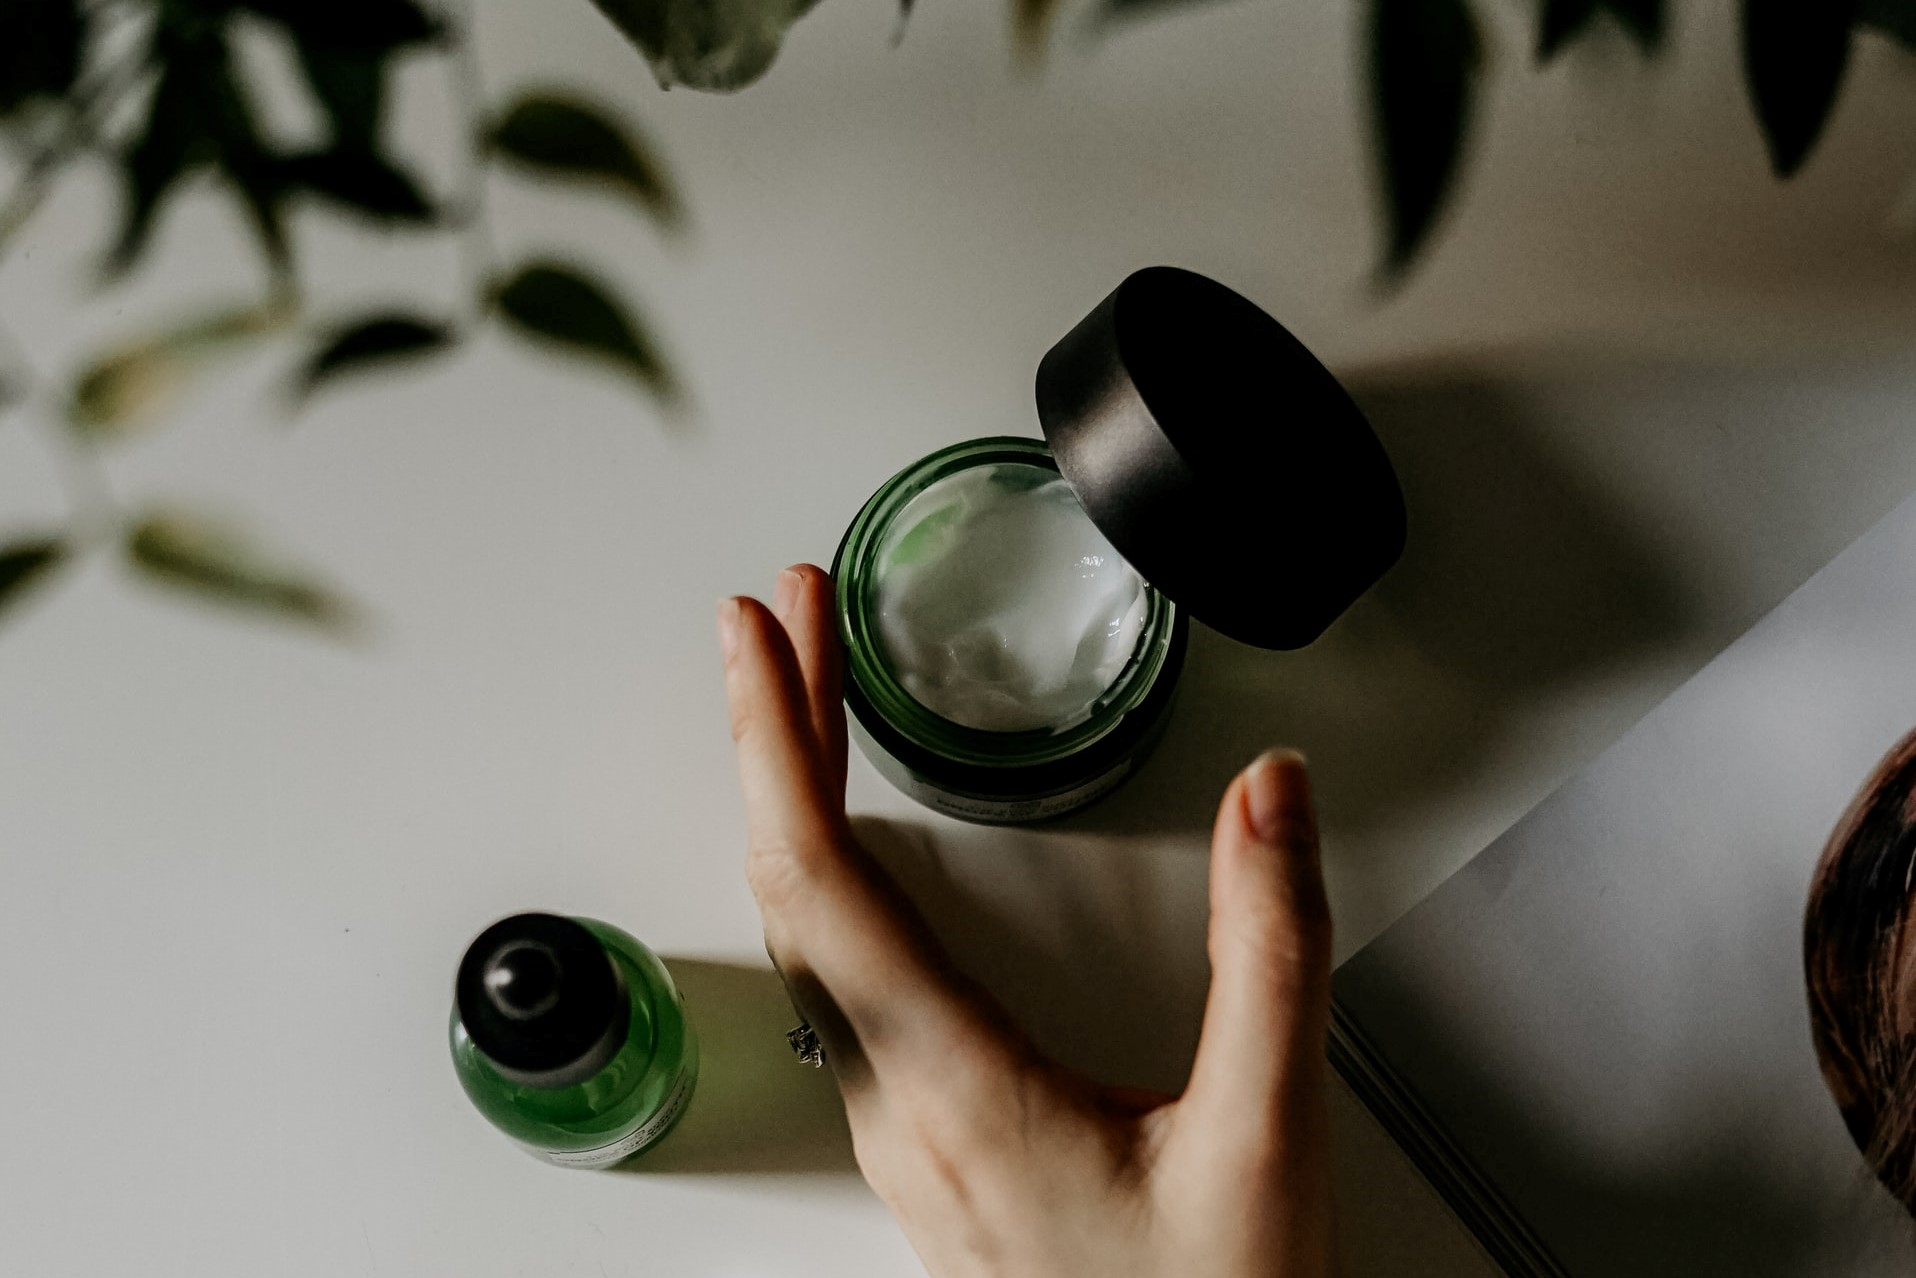 holding a small green bottle of face cream